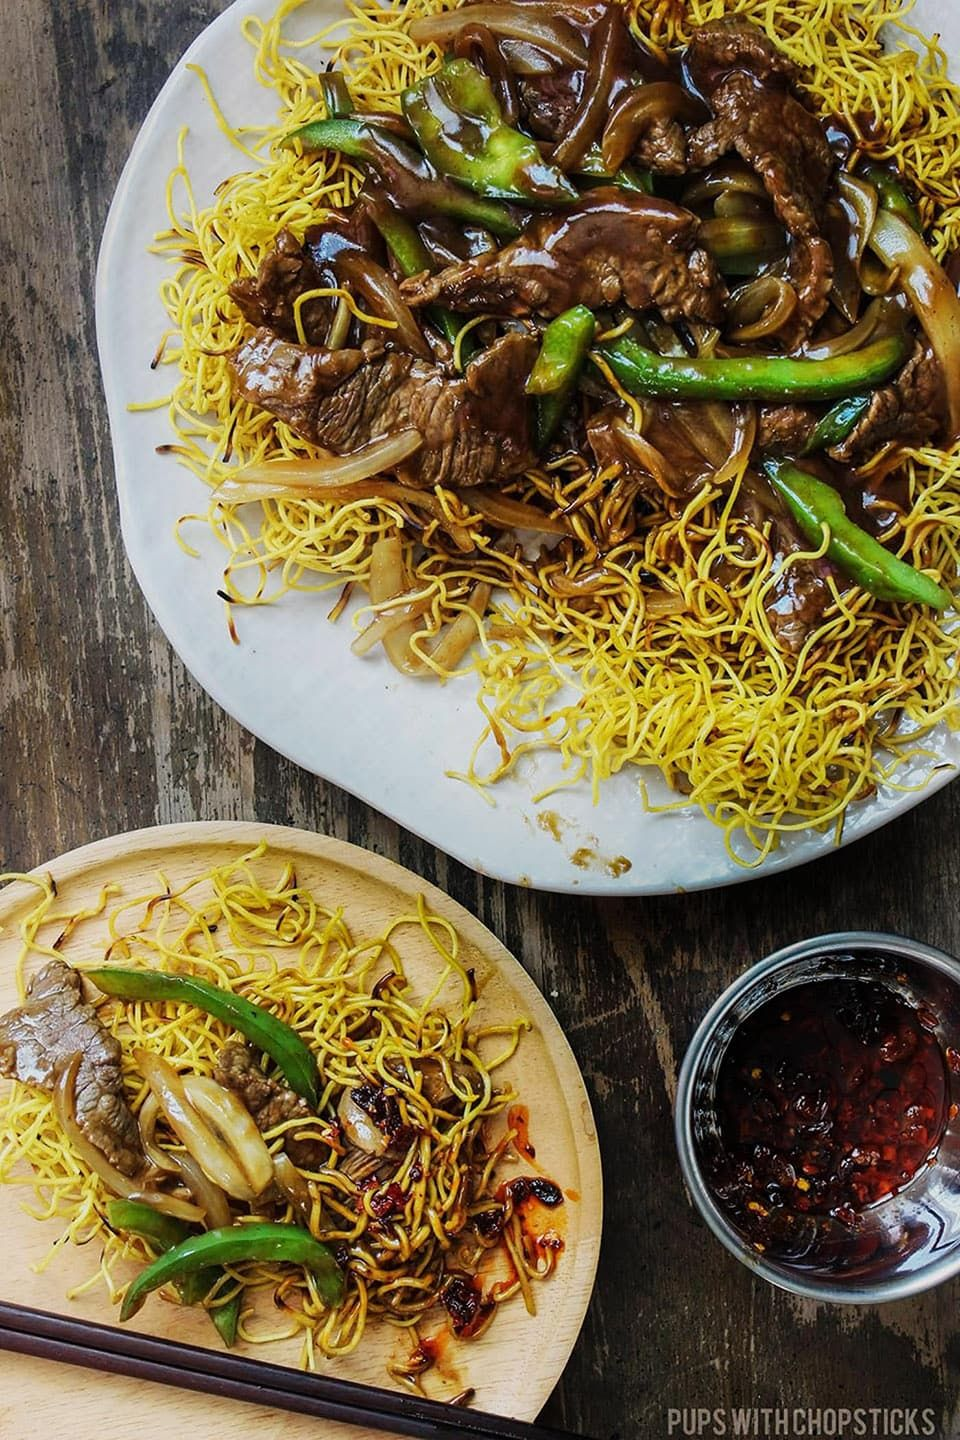 Crispy Cantonese Beef Chow Mein Crispy Cantonese beef chow mein recipe loaded with saucy beef, peppers and onions on top. A very common takeout dish that's delicious and easy to re-create right in the comfort of your home!